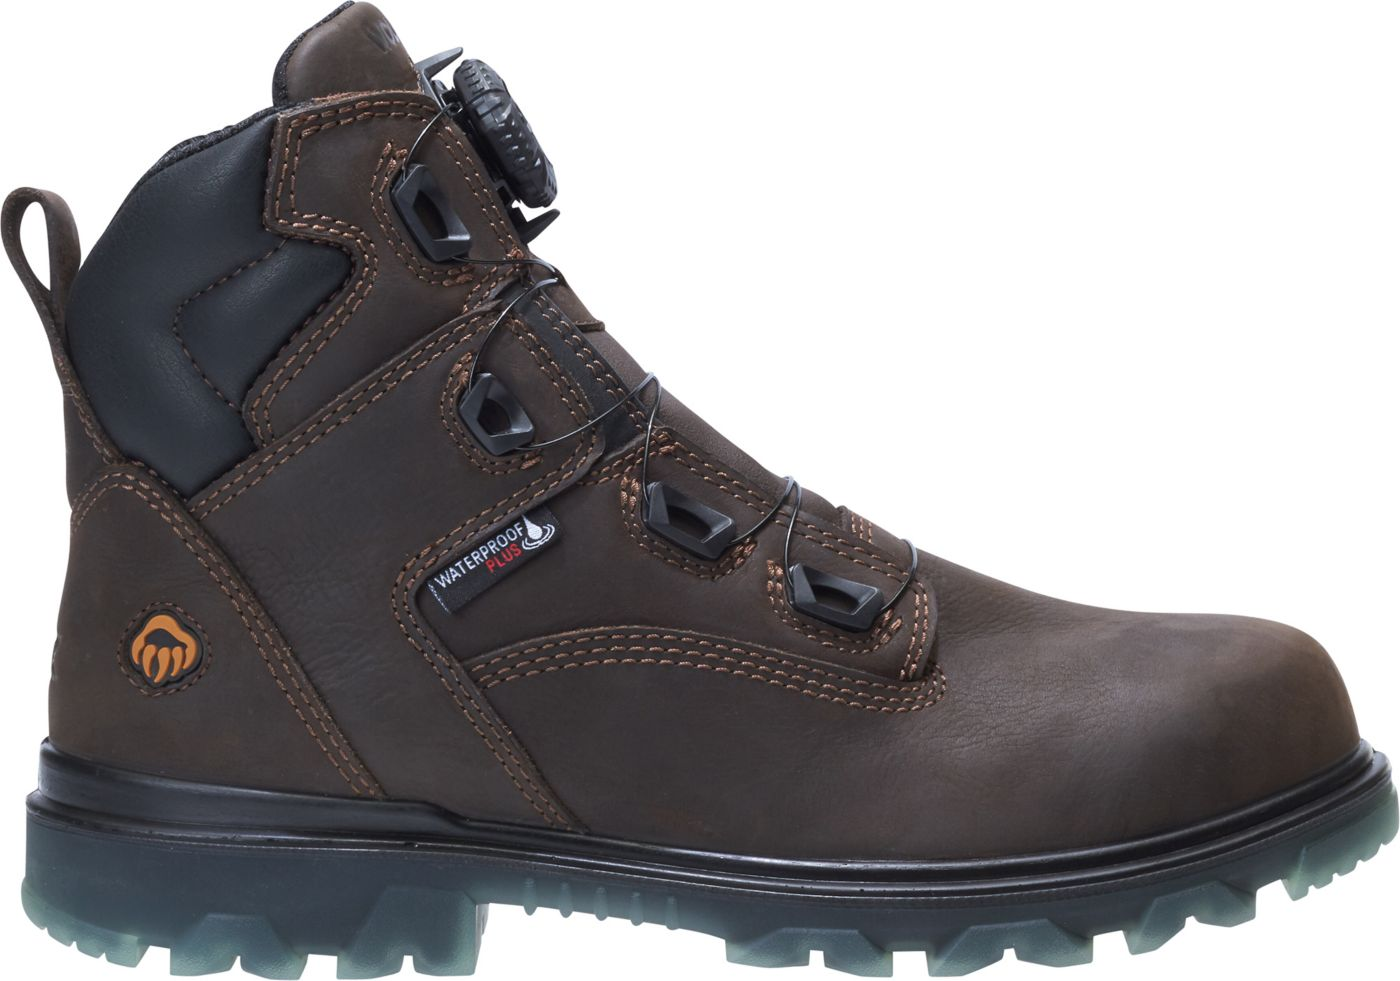 Wolverine Men's I-90 EPX BOA Waterproof Composite Toe Work Boots